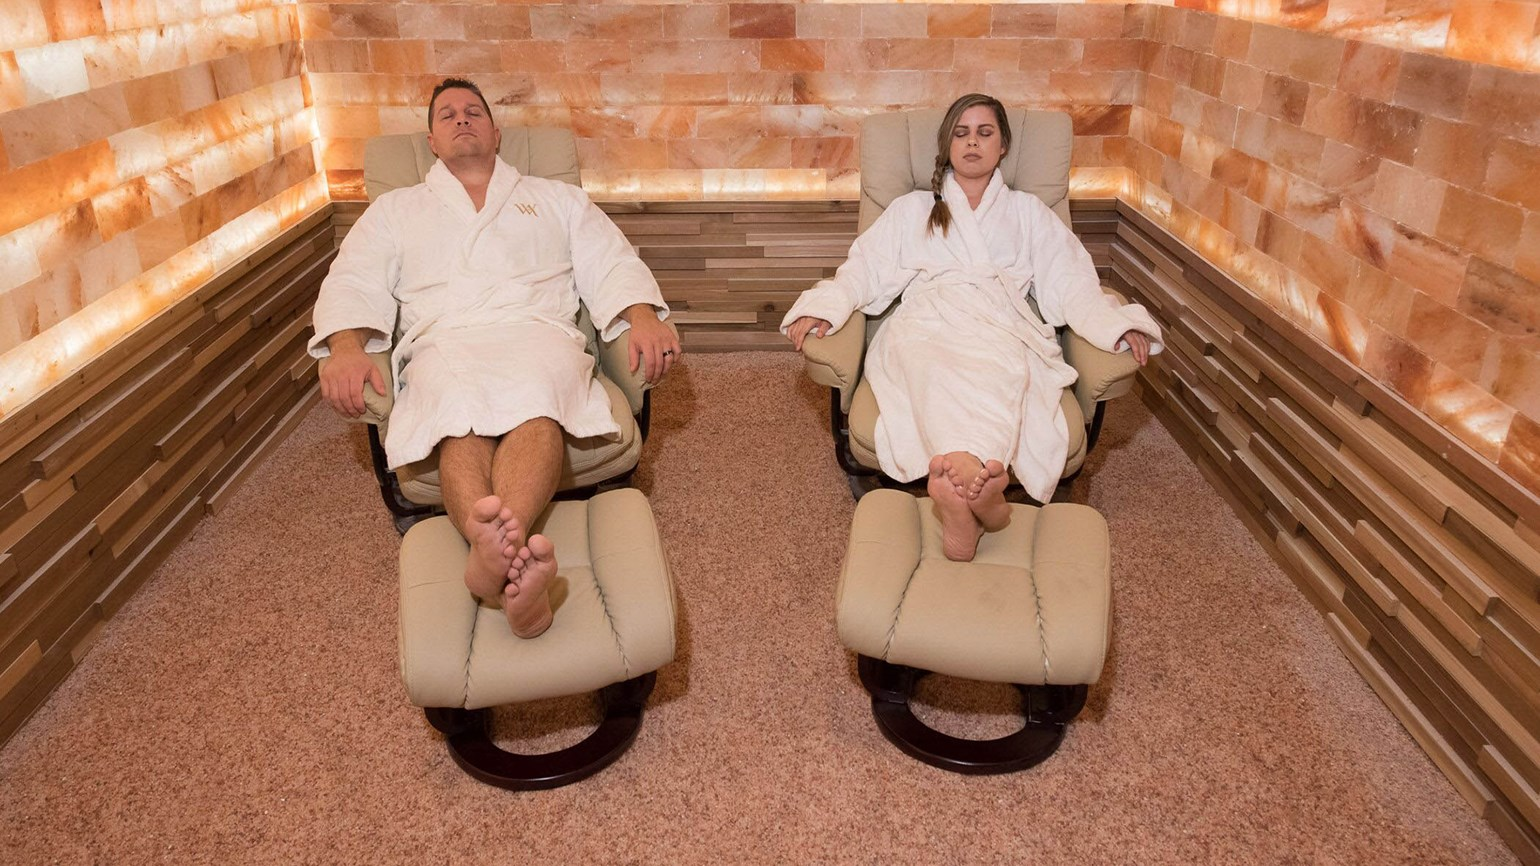 Waldorf Astoria Orlando spa opens Himalayan salt room